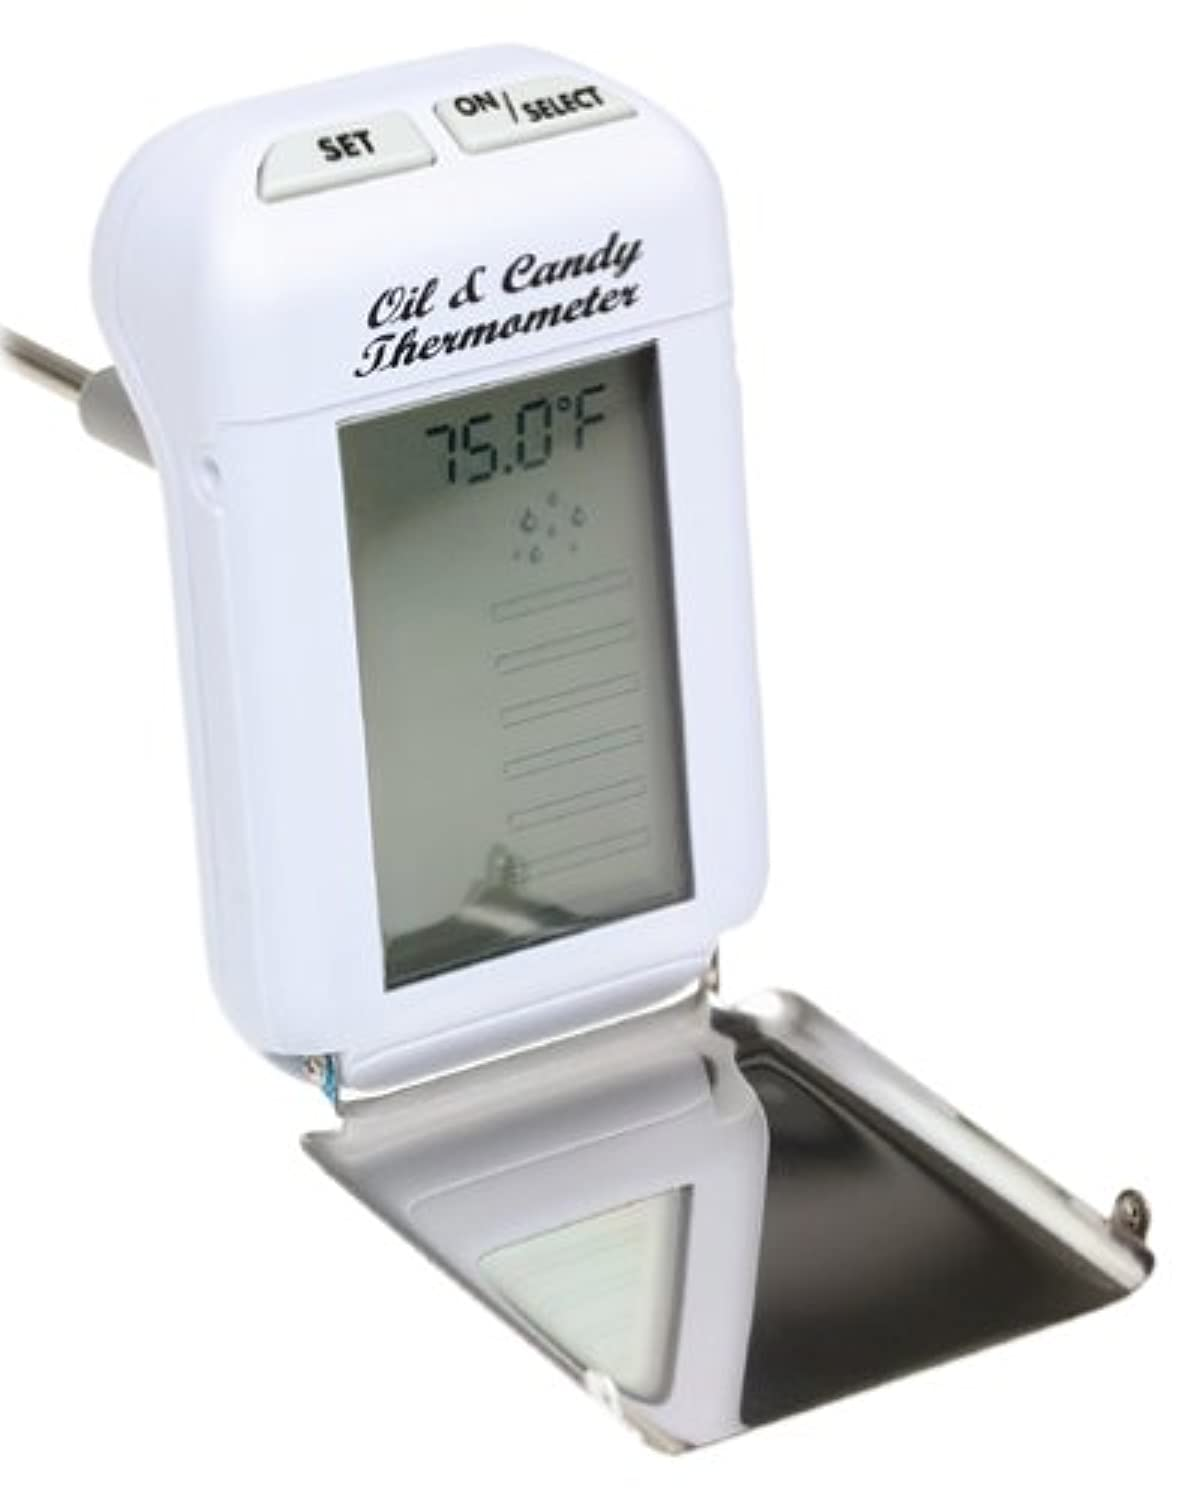 Maverick CT-03 Digital Oil & Candy Thermomter